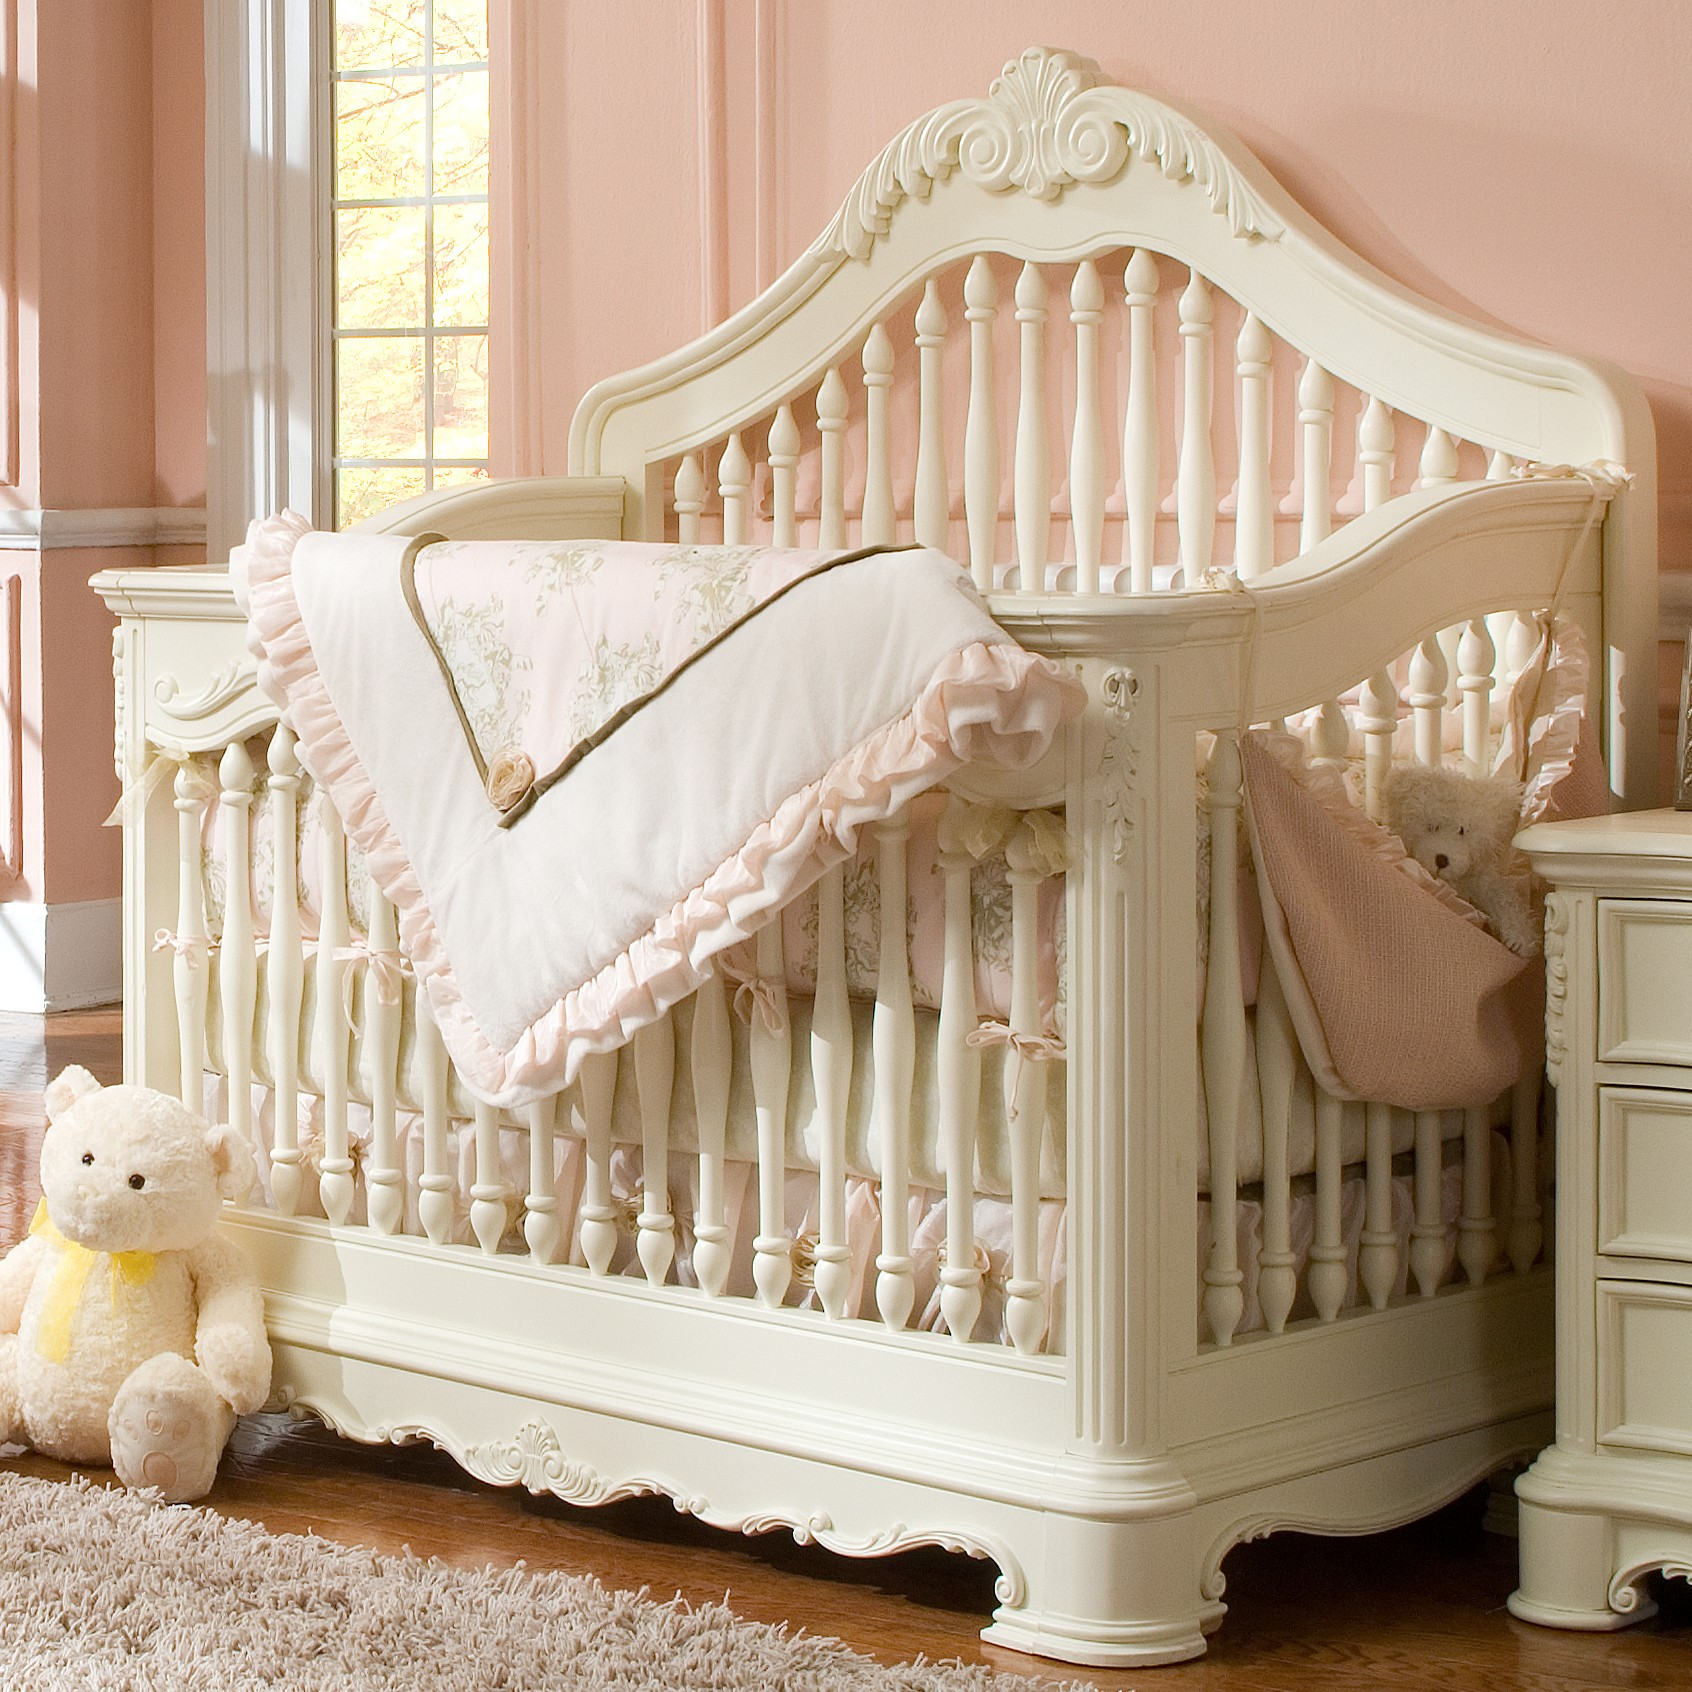 Cheap Changing Tables For Babies Awesome Baby Cribs Ashley Furniture Italian Baby Furniture